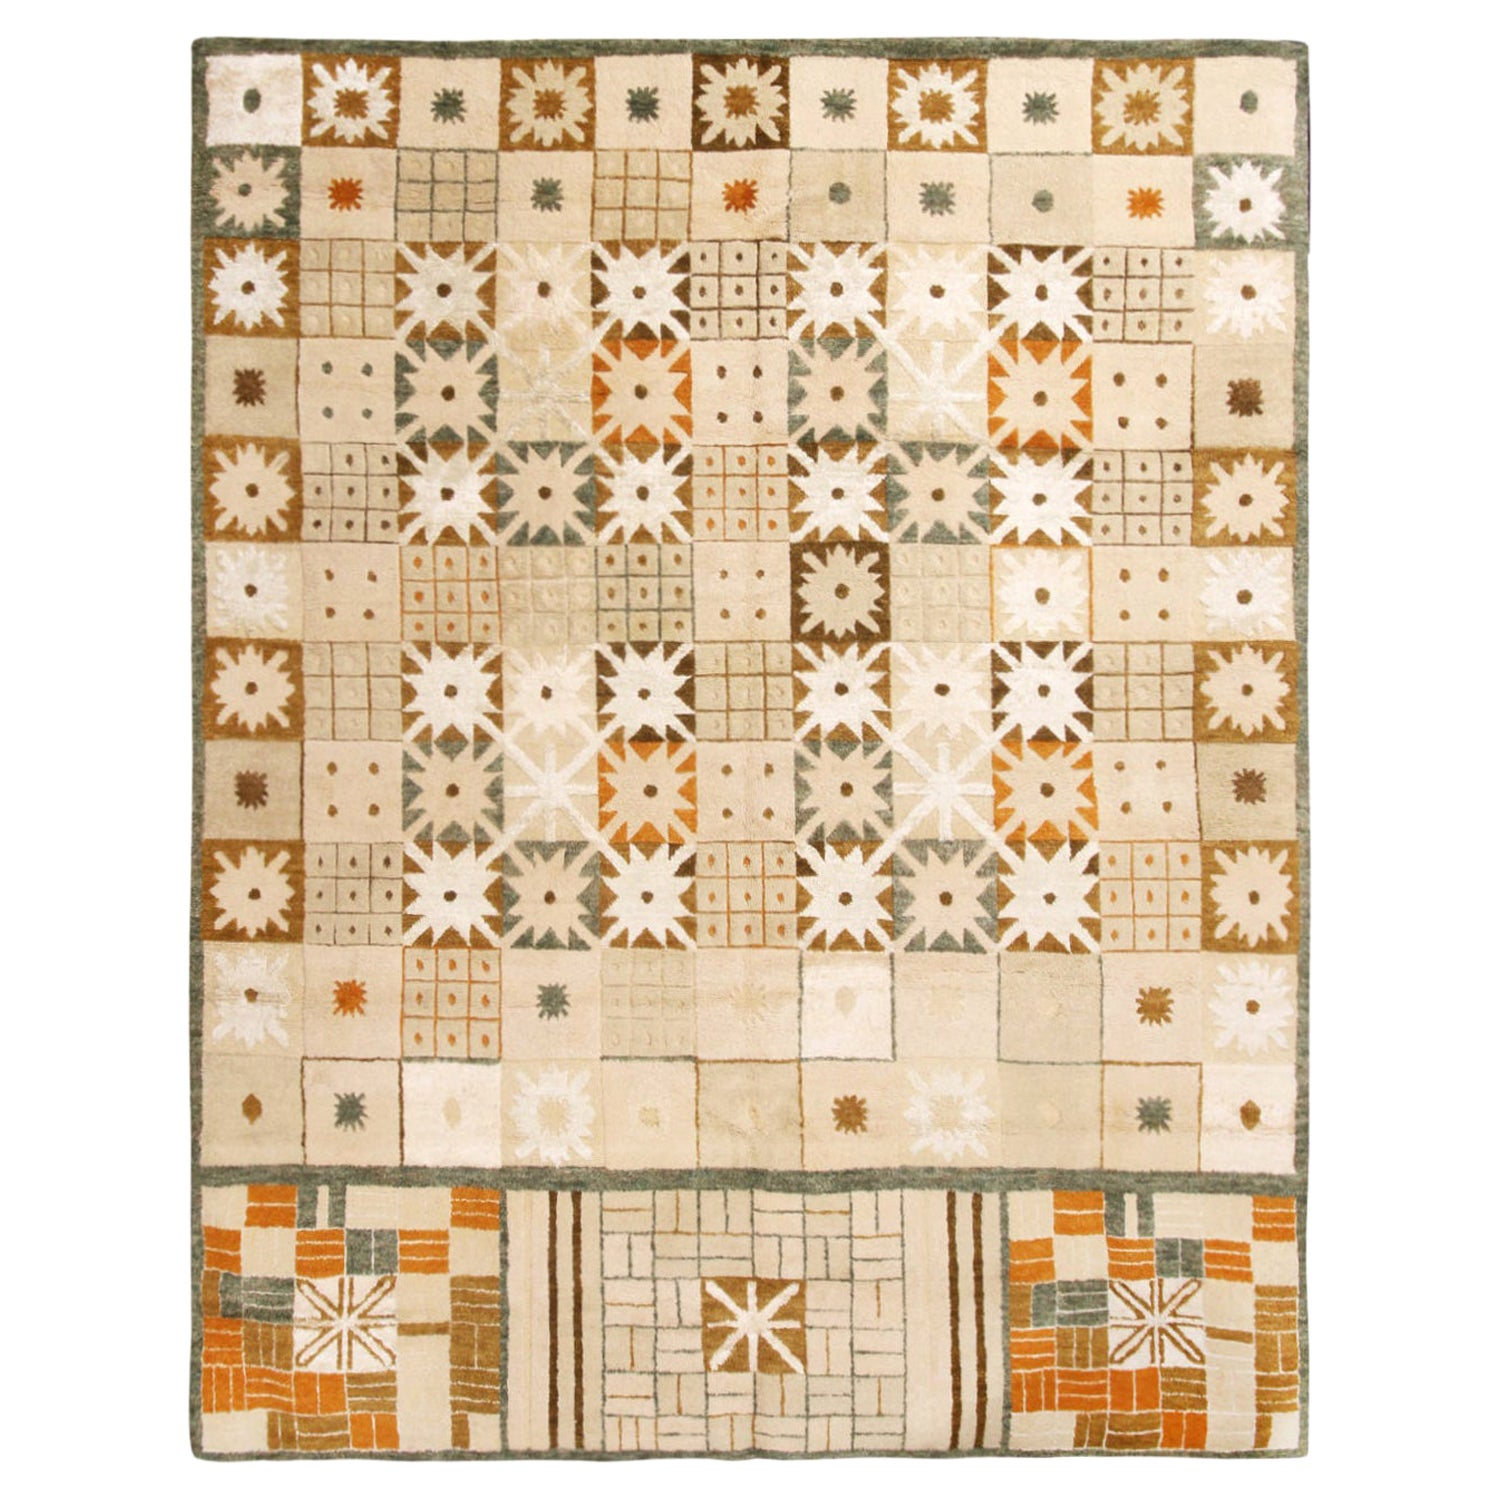 Rug & Kilim's Scandinavian-Inspired Geometric Cream Beige Brown Wool Pile Rug